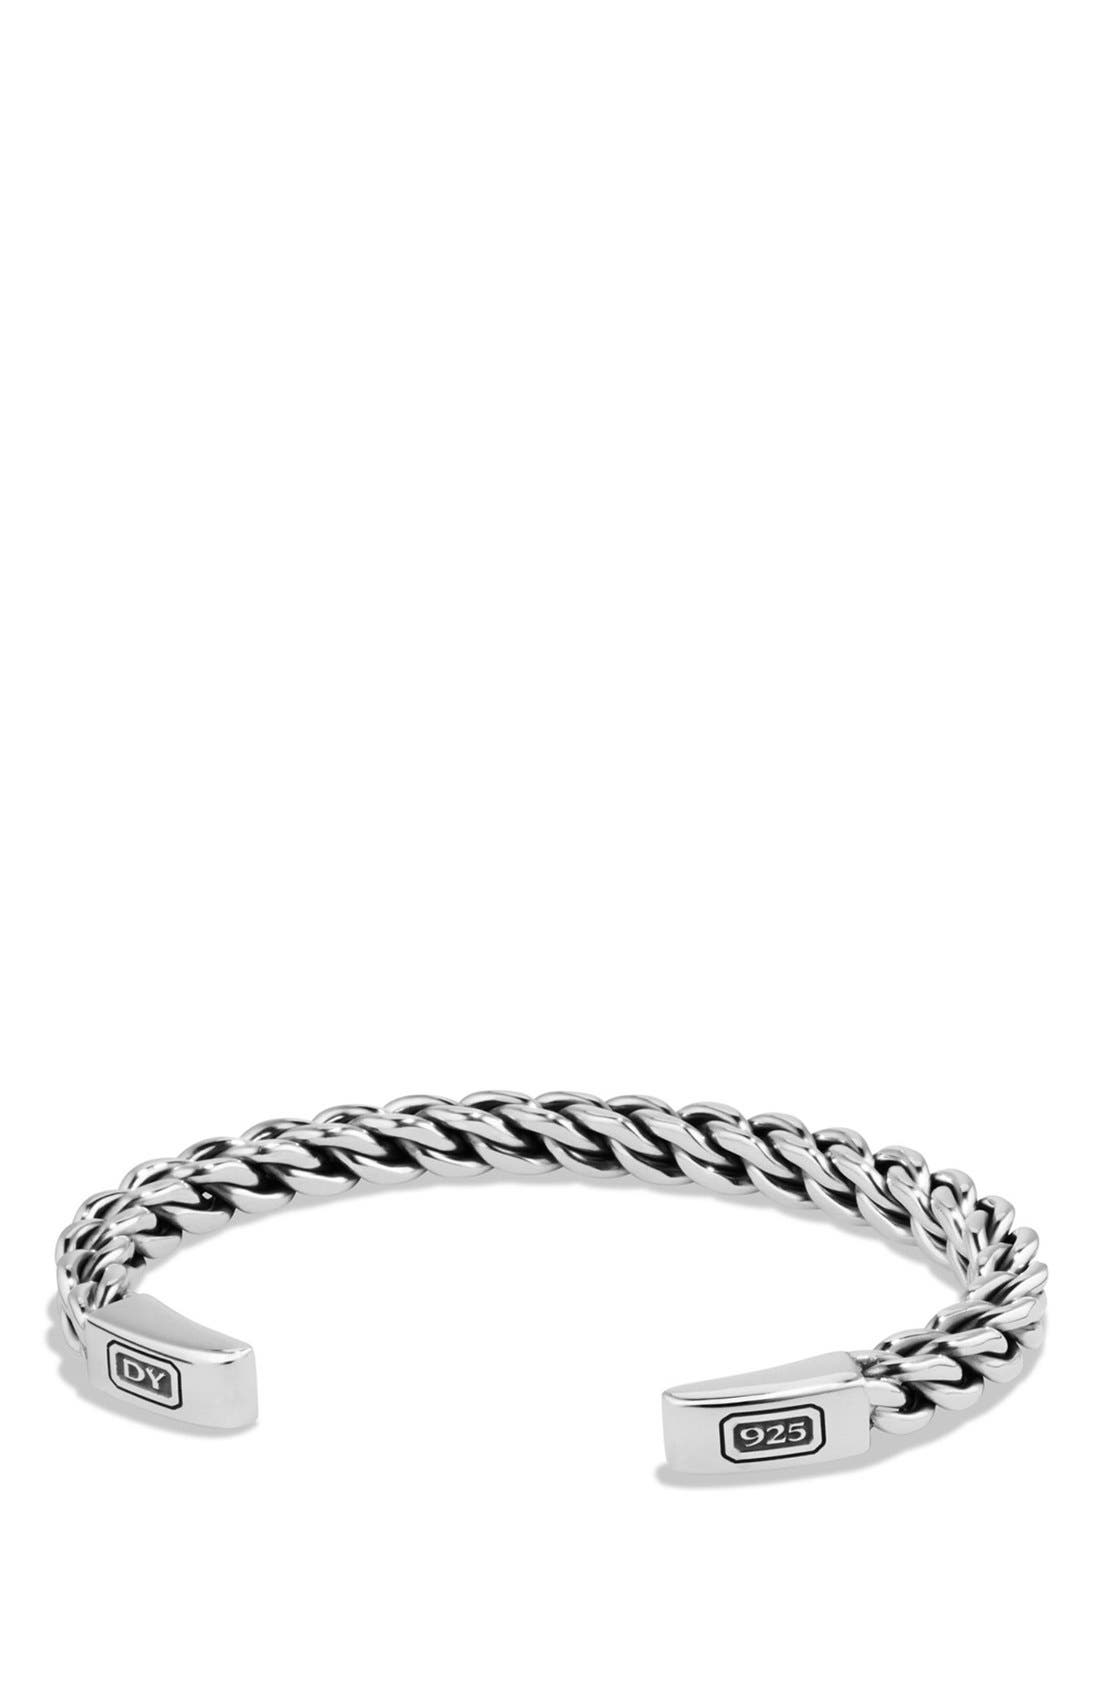 Alternate Image 1 Selected - David Yurman 'Chain' Woven Cuff Bracelet